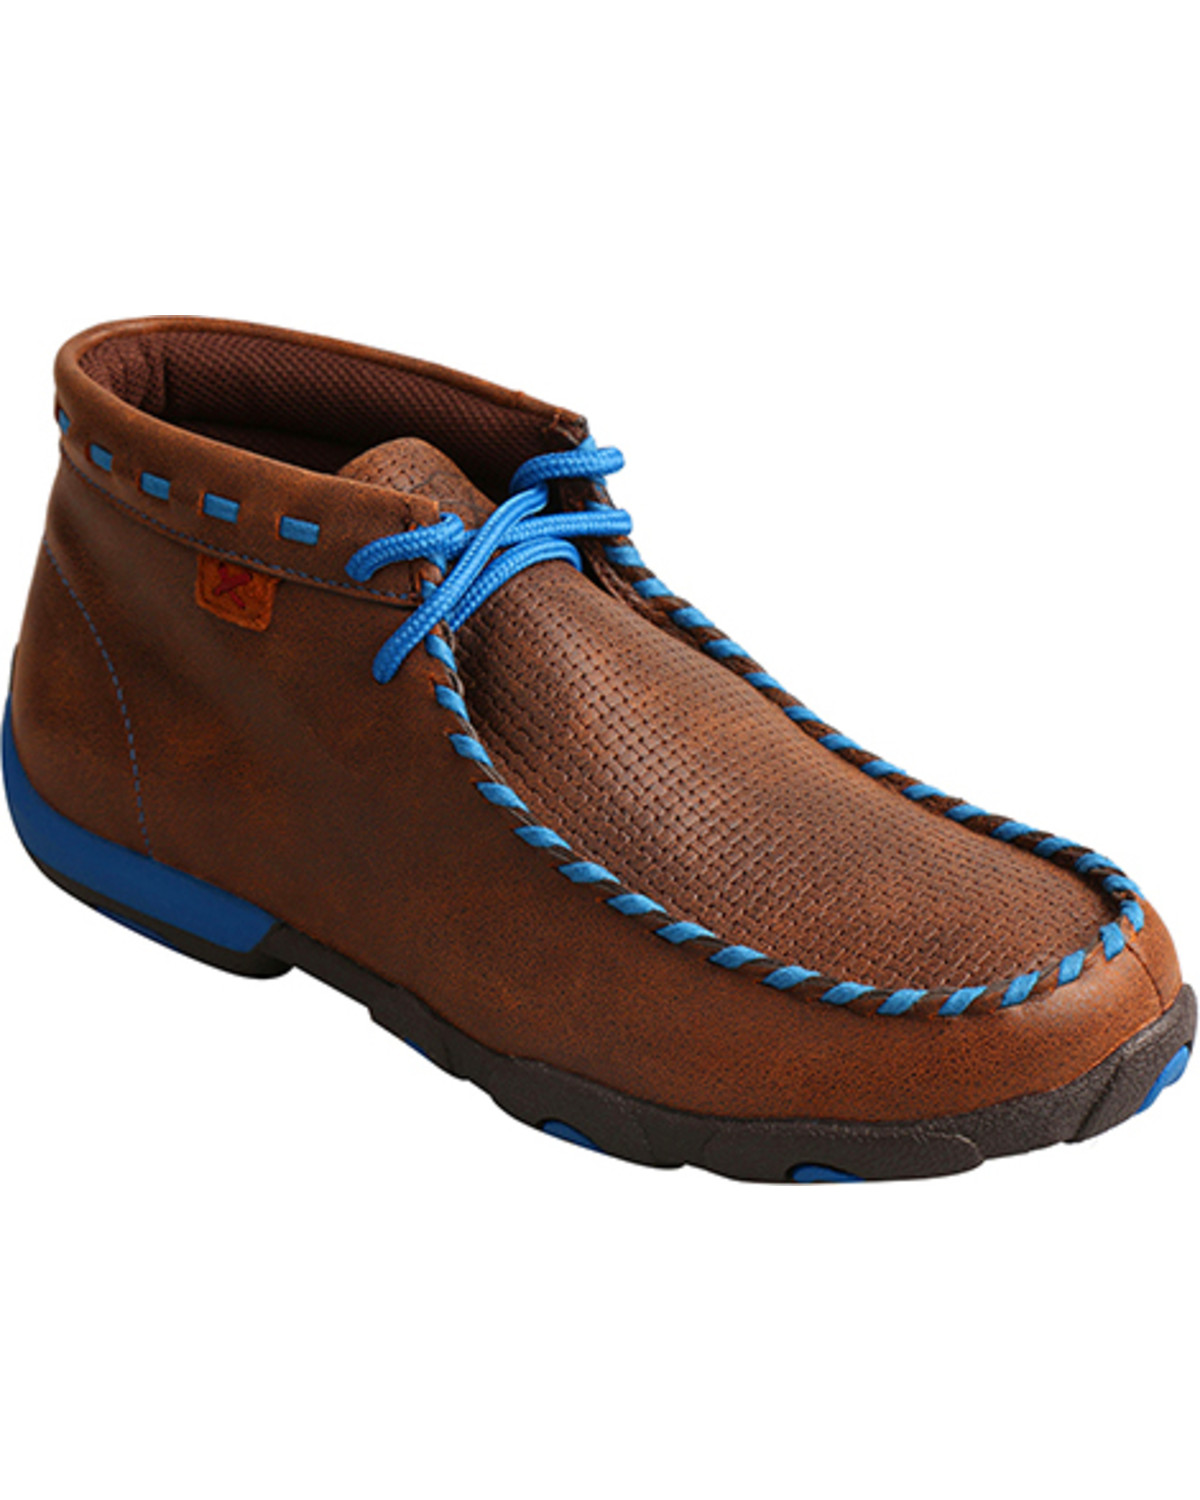 Perfect Twisted X Mens All Round Lace Up Boots In Distressed Saddle Leather - Koolstuff Australia